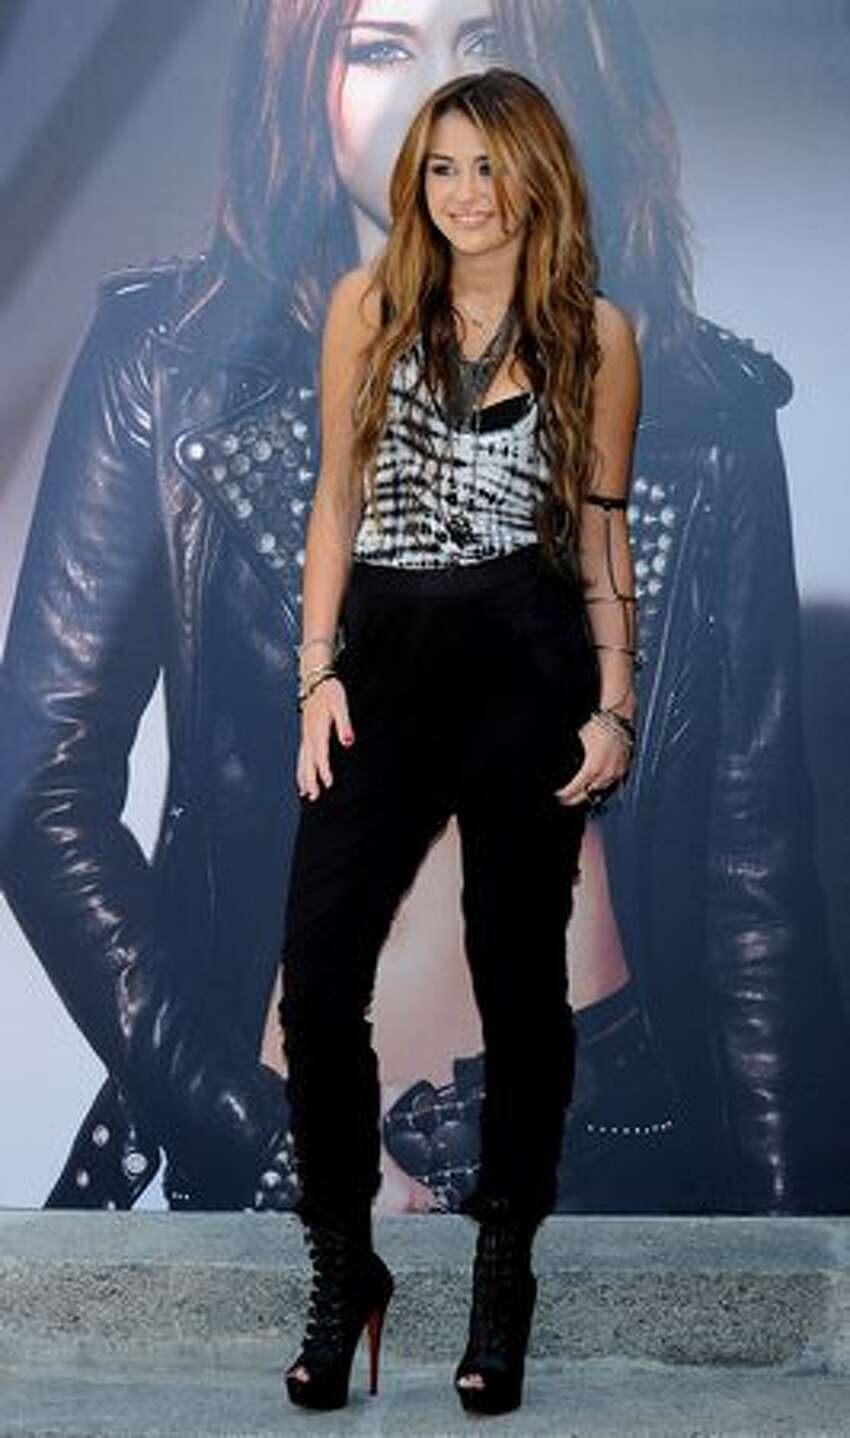 In this gallery, we'll take a look at how Cyrus has presented herself in public since October 2008, when she celebrated her forthcoming 16th birthday with a performance at Disneyland. Here, she promotes her new album